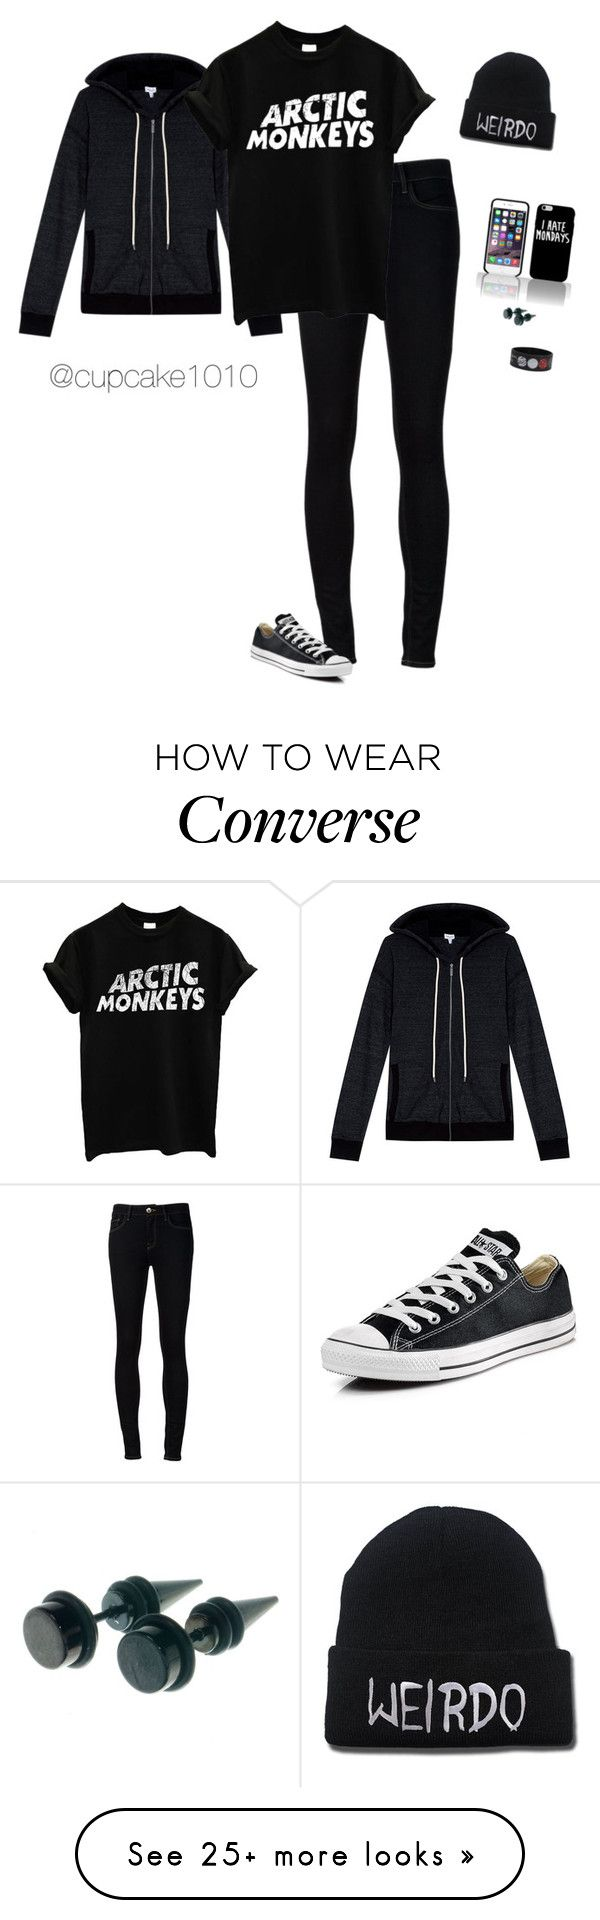 """Please Read Description =)"" by hanakdudley on Polyvore featuring Splendid, Ström, Converse, women's clothing, women's fashion, women, female, woman, misses and juniors"